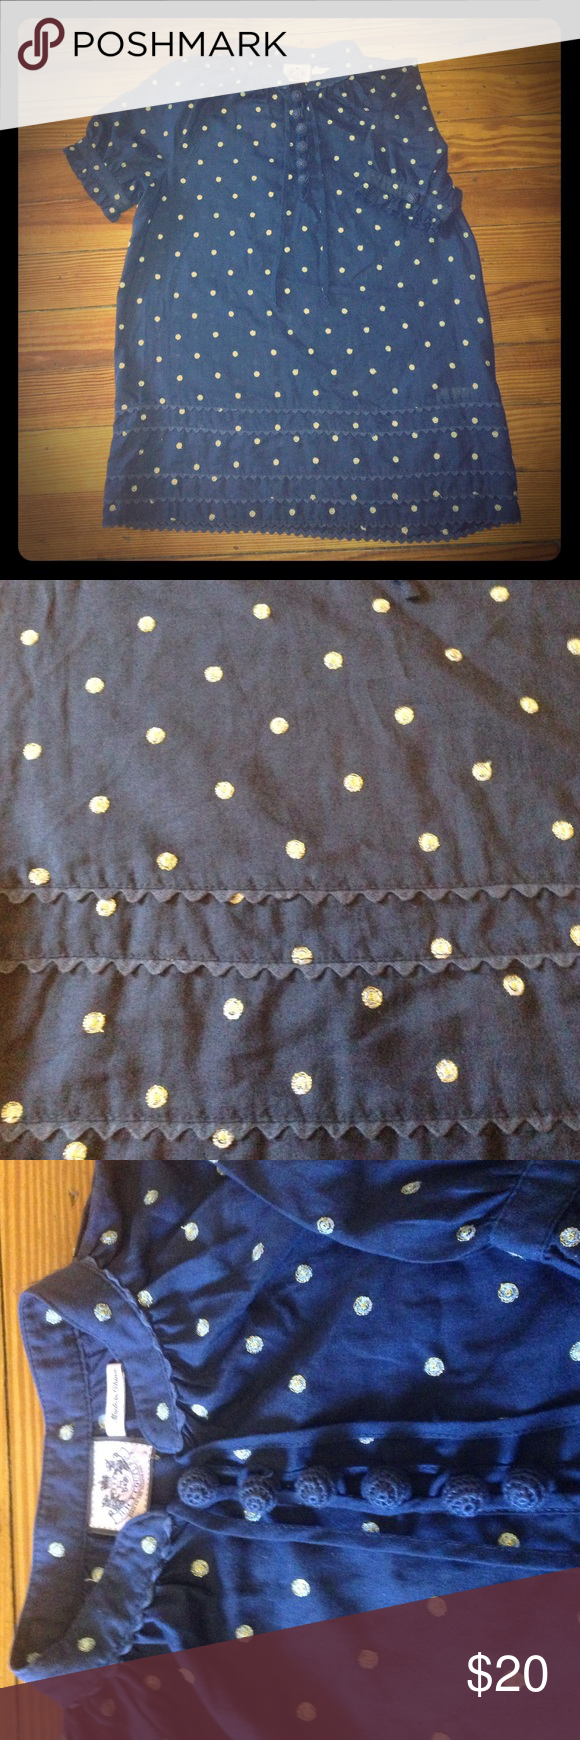 Juicy couture Navy blouse size 2 Juicy couture Navy blouse size 2. Navy with gold and light blue embroidered polka dots. Fun round crocheted buttons on the top and the sleeves. Also has two strings that can tie at the collar. Fun ruffle like embellishments at the bottom, on the sleeves and collar. This is a fun shirt with lots of unique details. Juicy Couture Tops Blouses